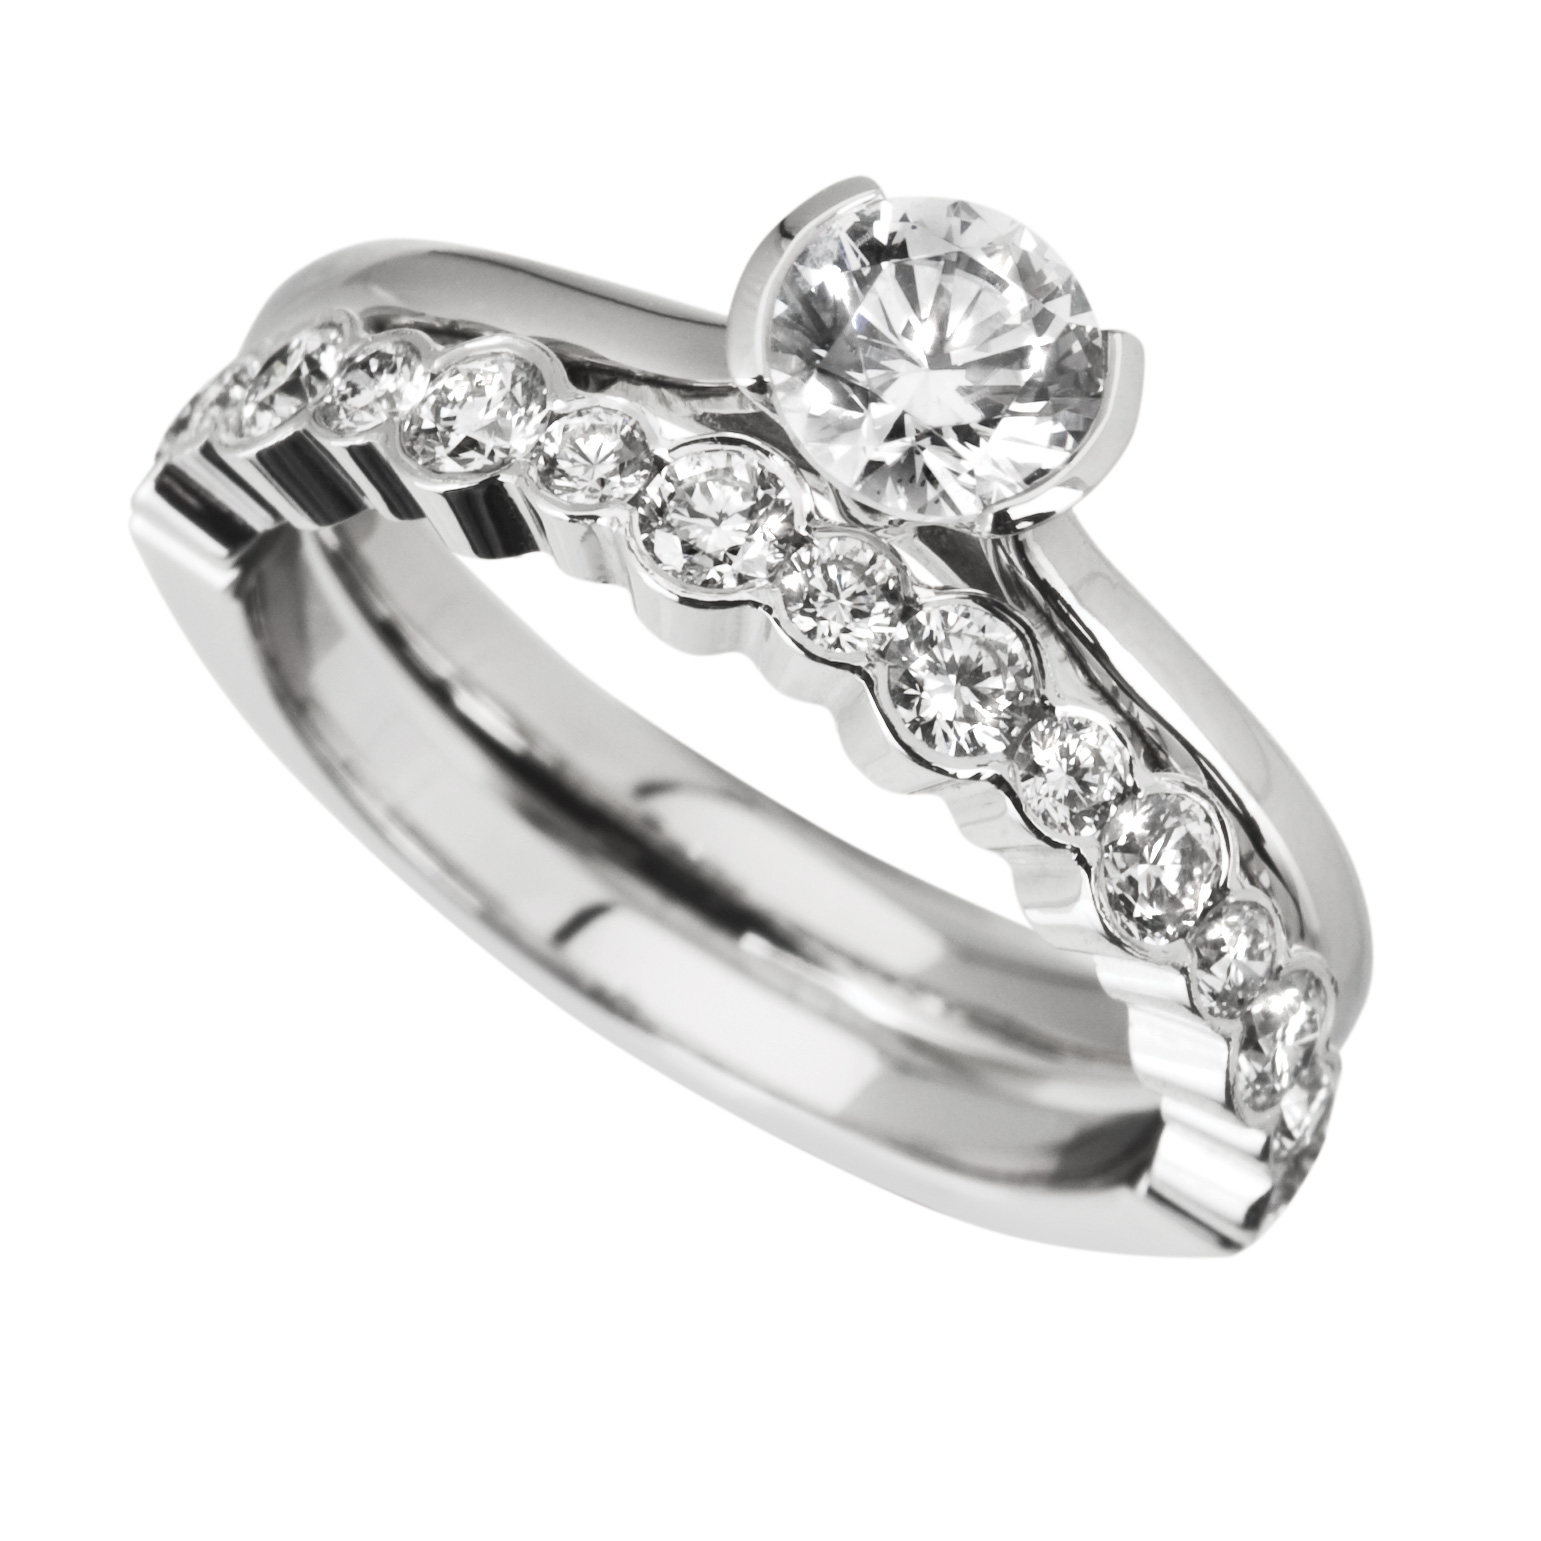 Make your wedding special with unique wedding engagement rings